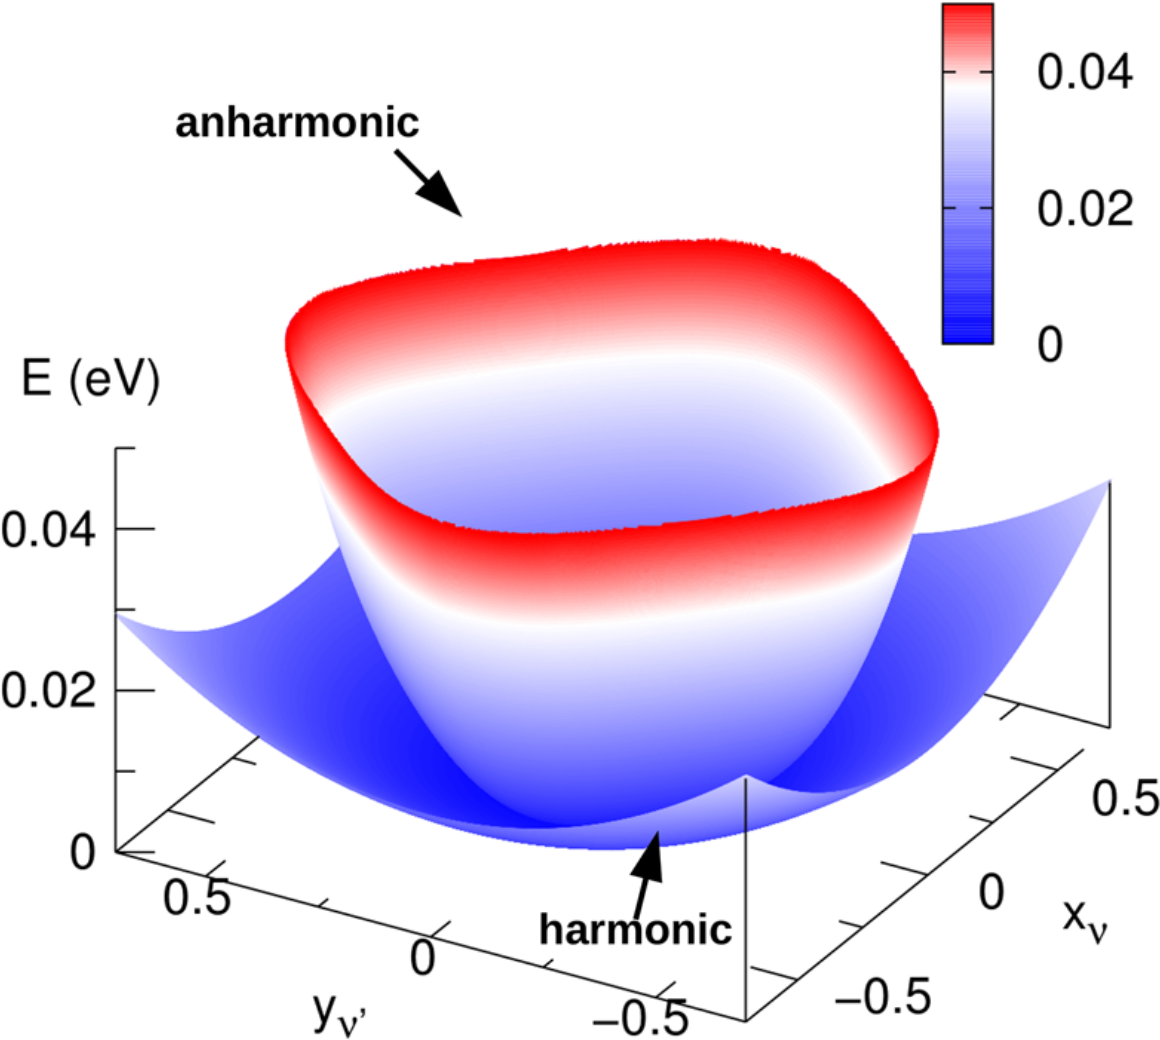 Van der Waals onteractions and anharmonicity in the lattice vibrations, dielectric constants, effective charges, and infrared spectra of the organic-inorganic halide perovskite CH3NH3PbI3